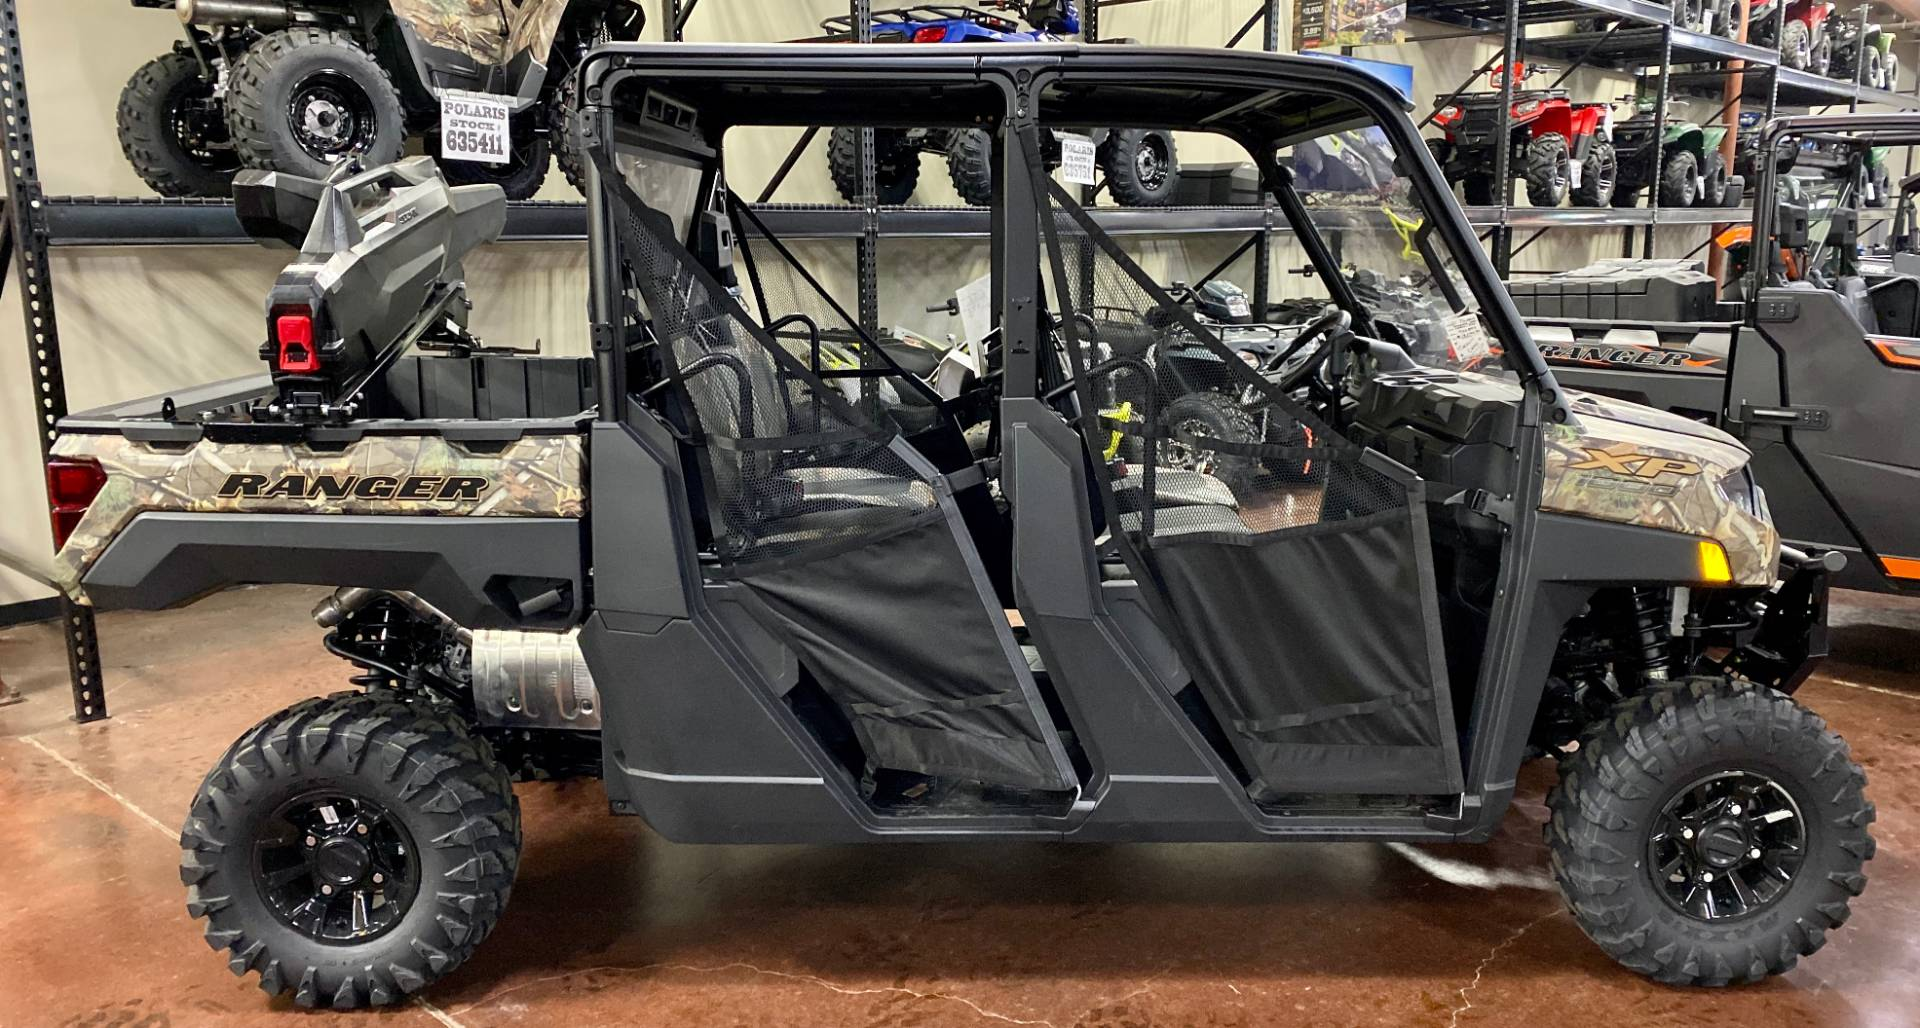 2020 Polaris Ranger Crew 1000 EPS in Statesville, North Carolina - Photo 3